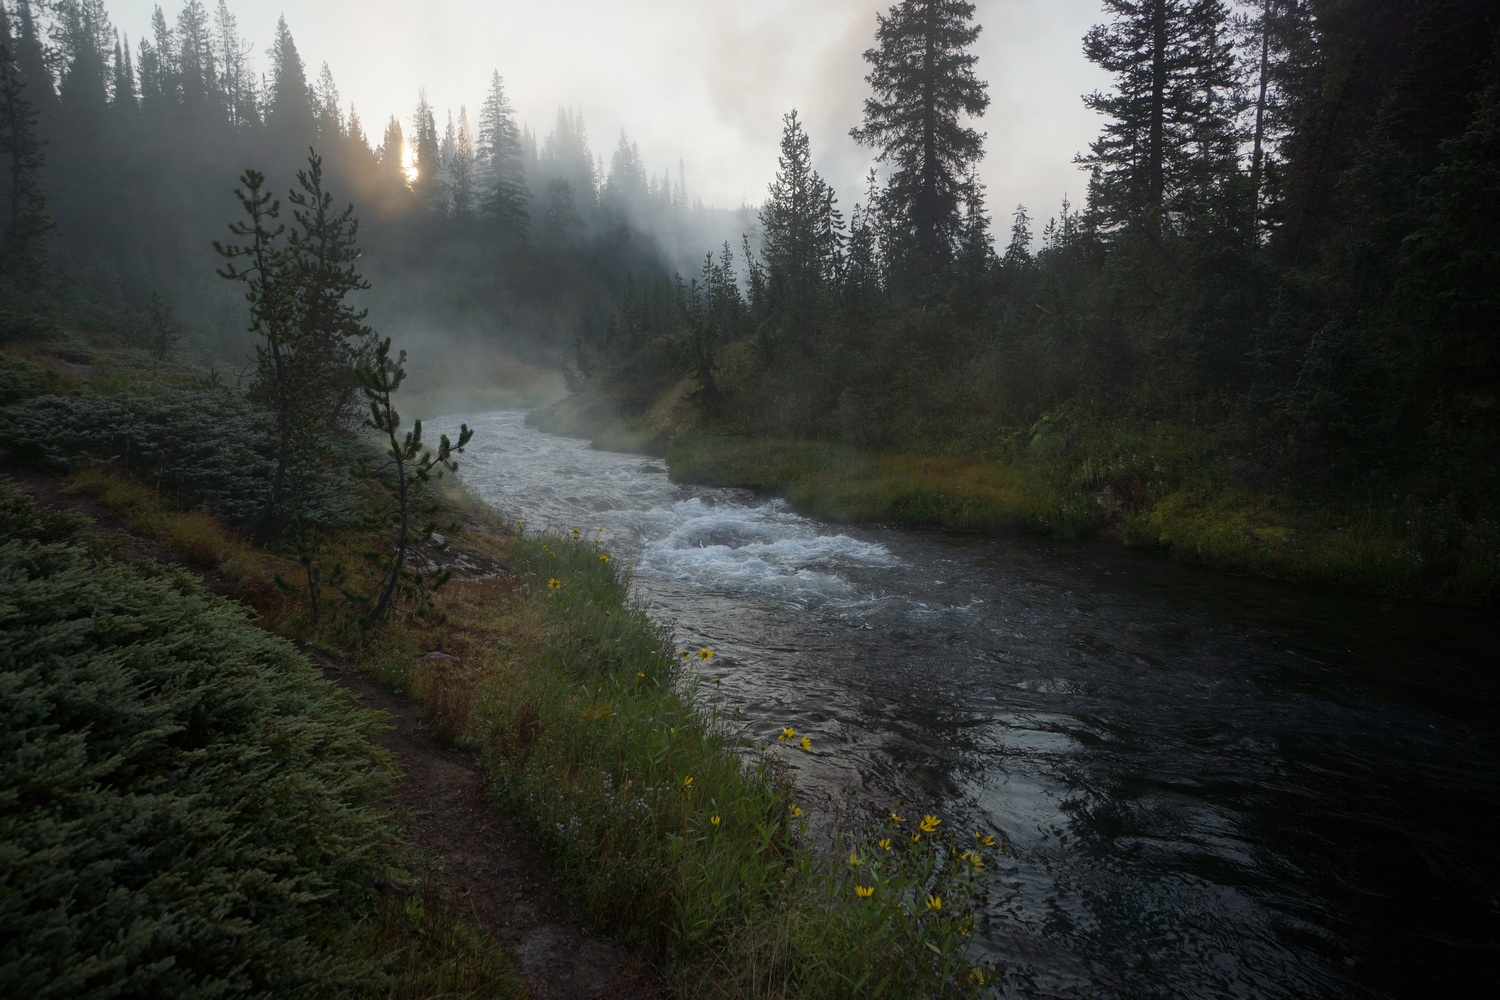 yellowstone hike on the continental divide trail 2018